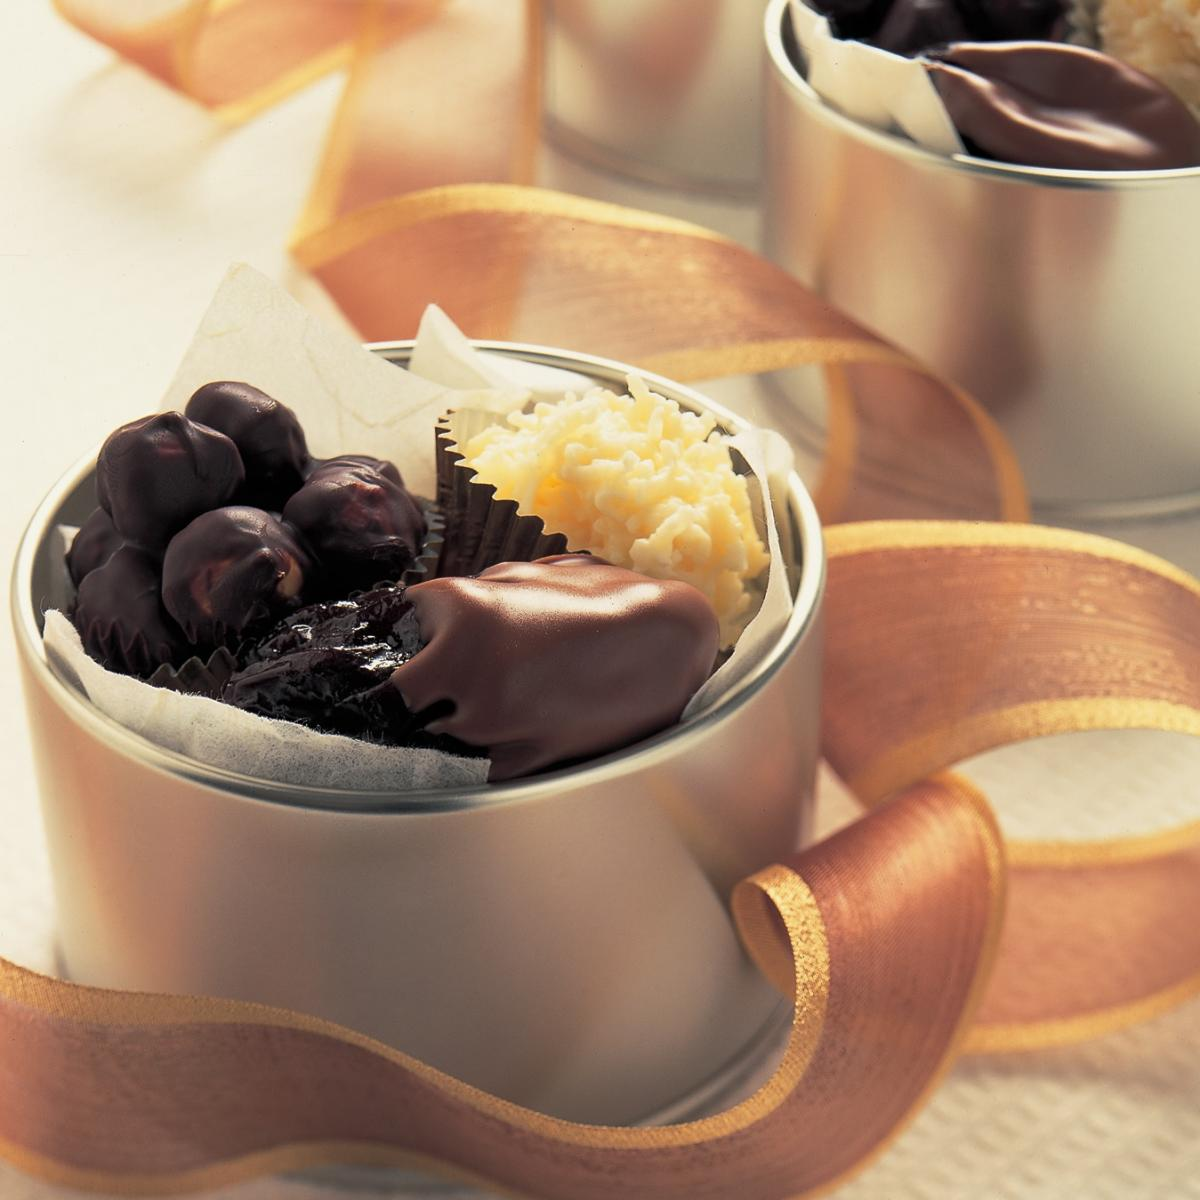 A picture of Delia's Hand-made Chocolates recipe